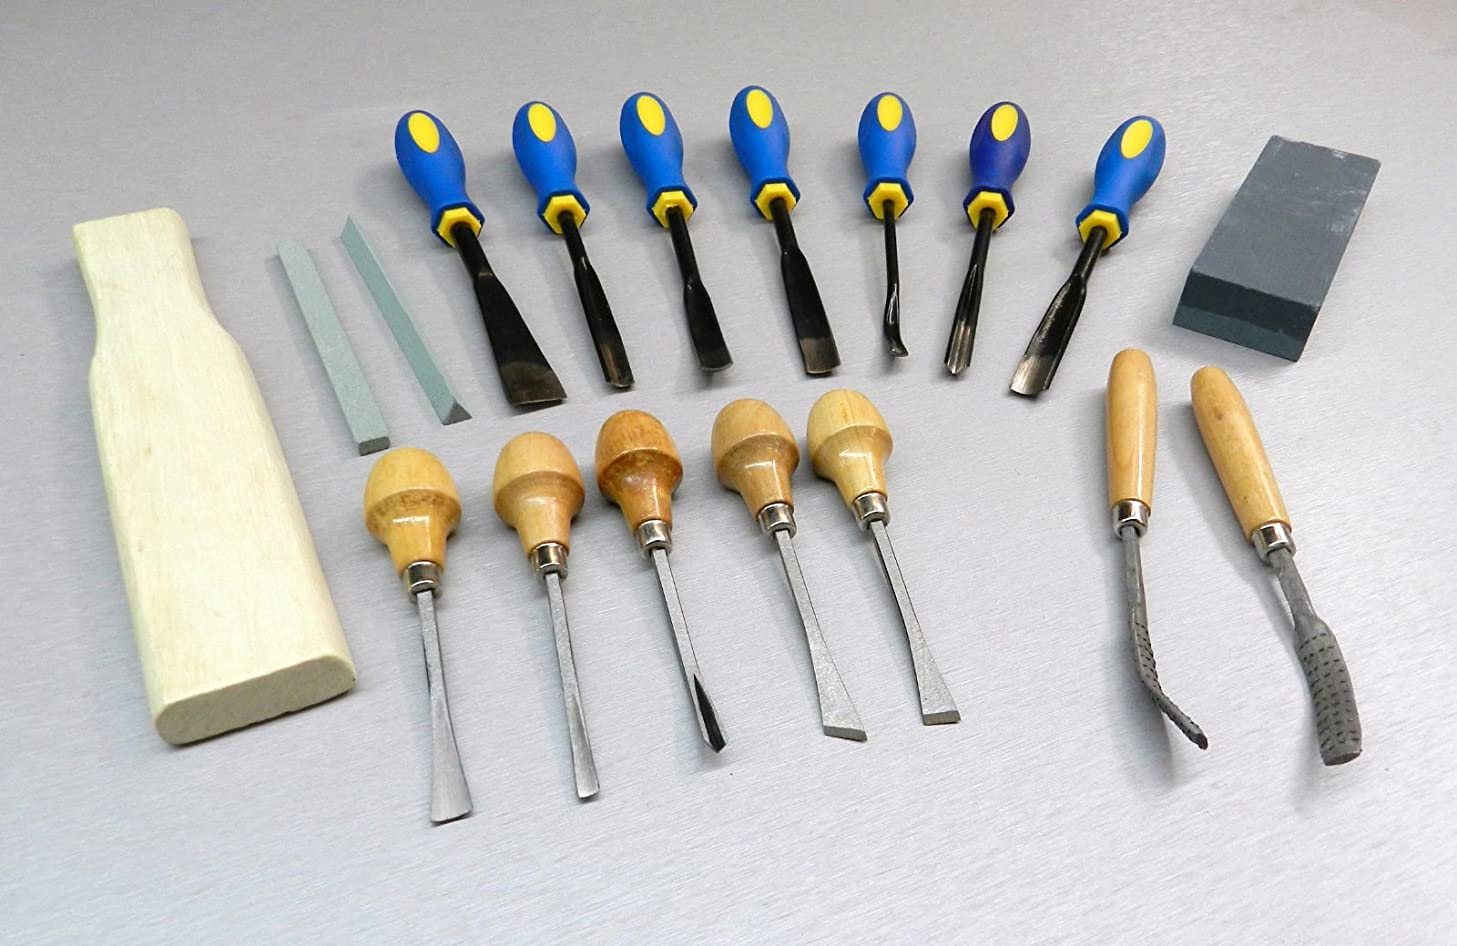 18 PC WOOD CARVING SET CARVERS TOOLS CHISELS KIT WOOD WORK CRAFT IN CLOTH POUCH (LZ 3.9 FRE) NOVELTOOLS